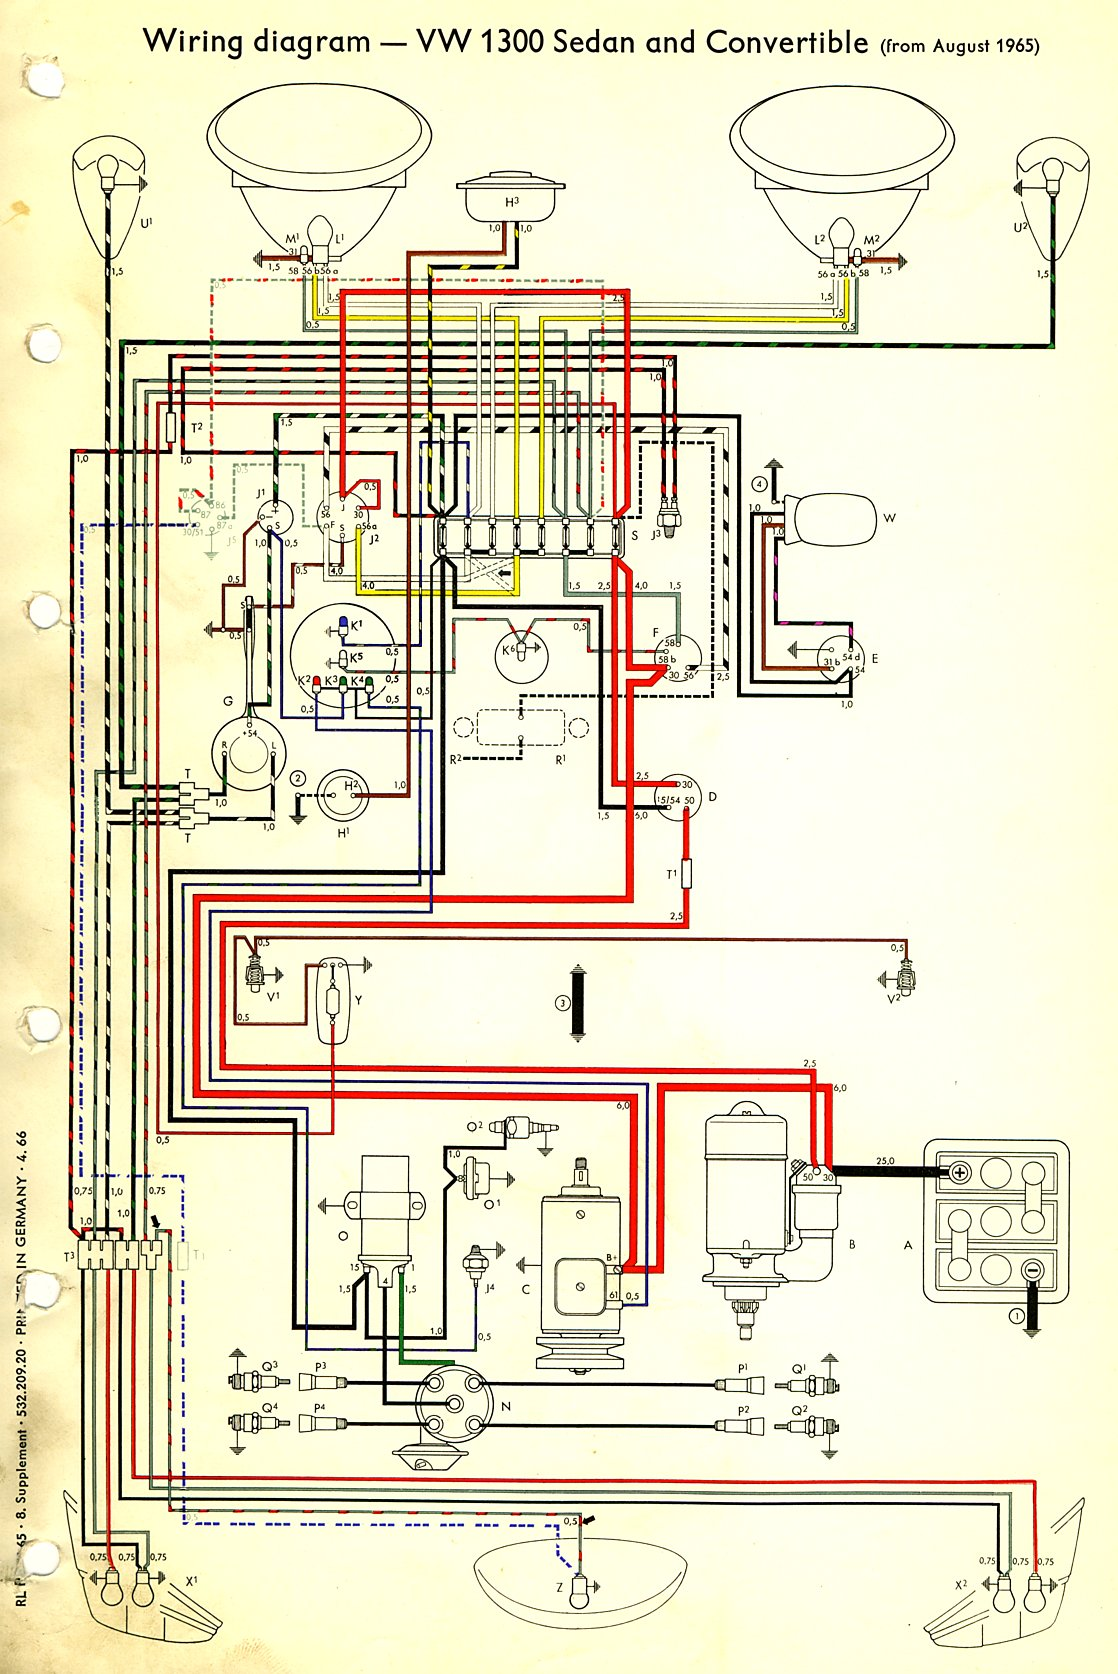 1966 beetle wiring diagram thegoldenbug com VW Beetle Steel Wheels